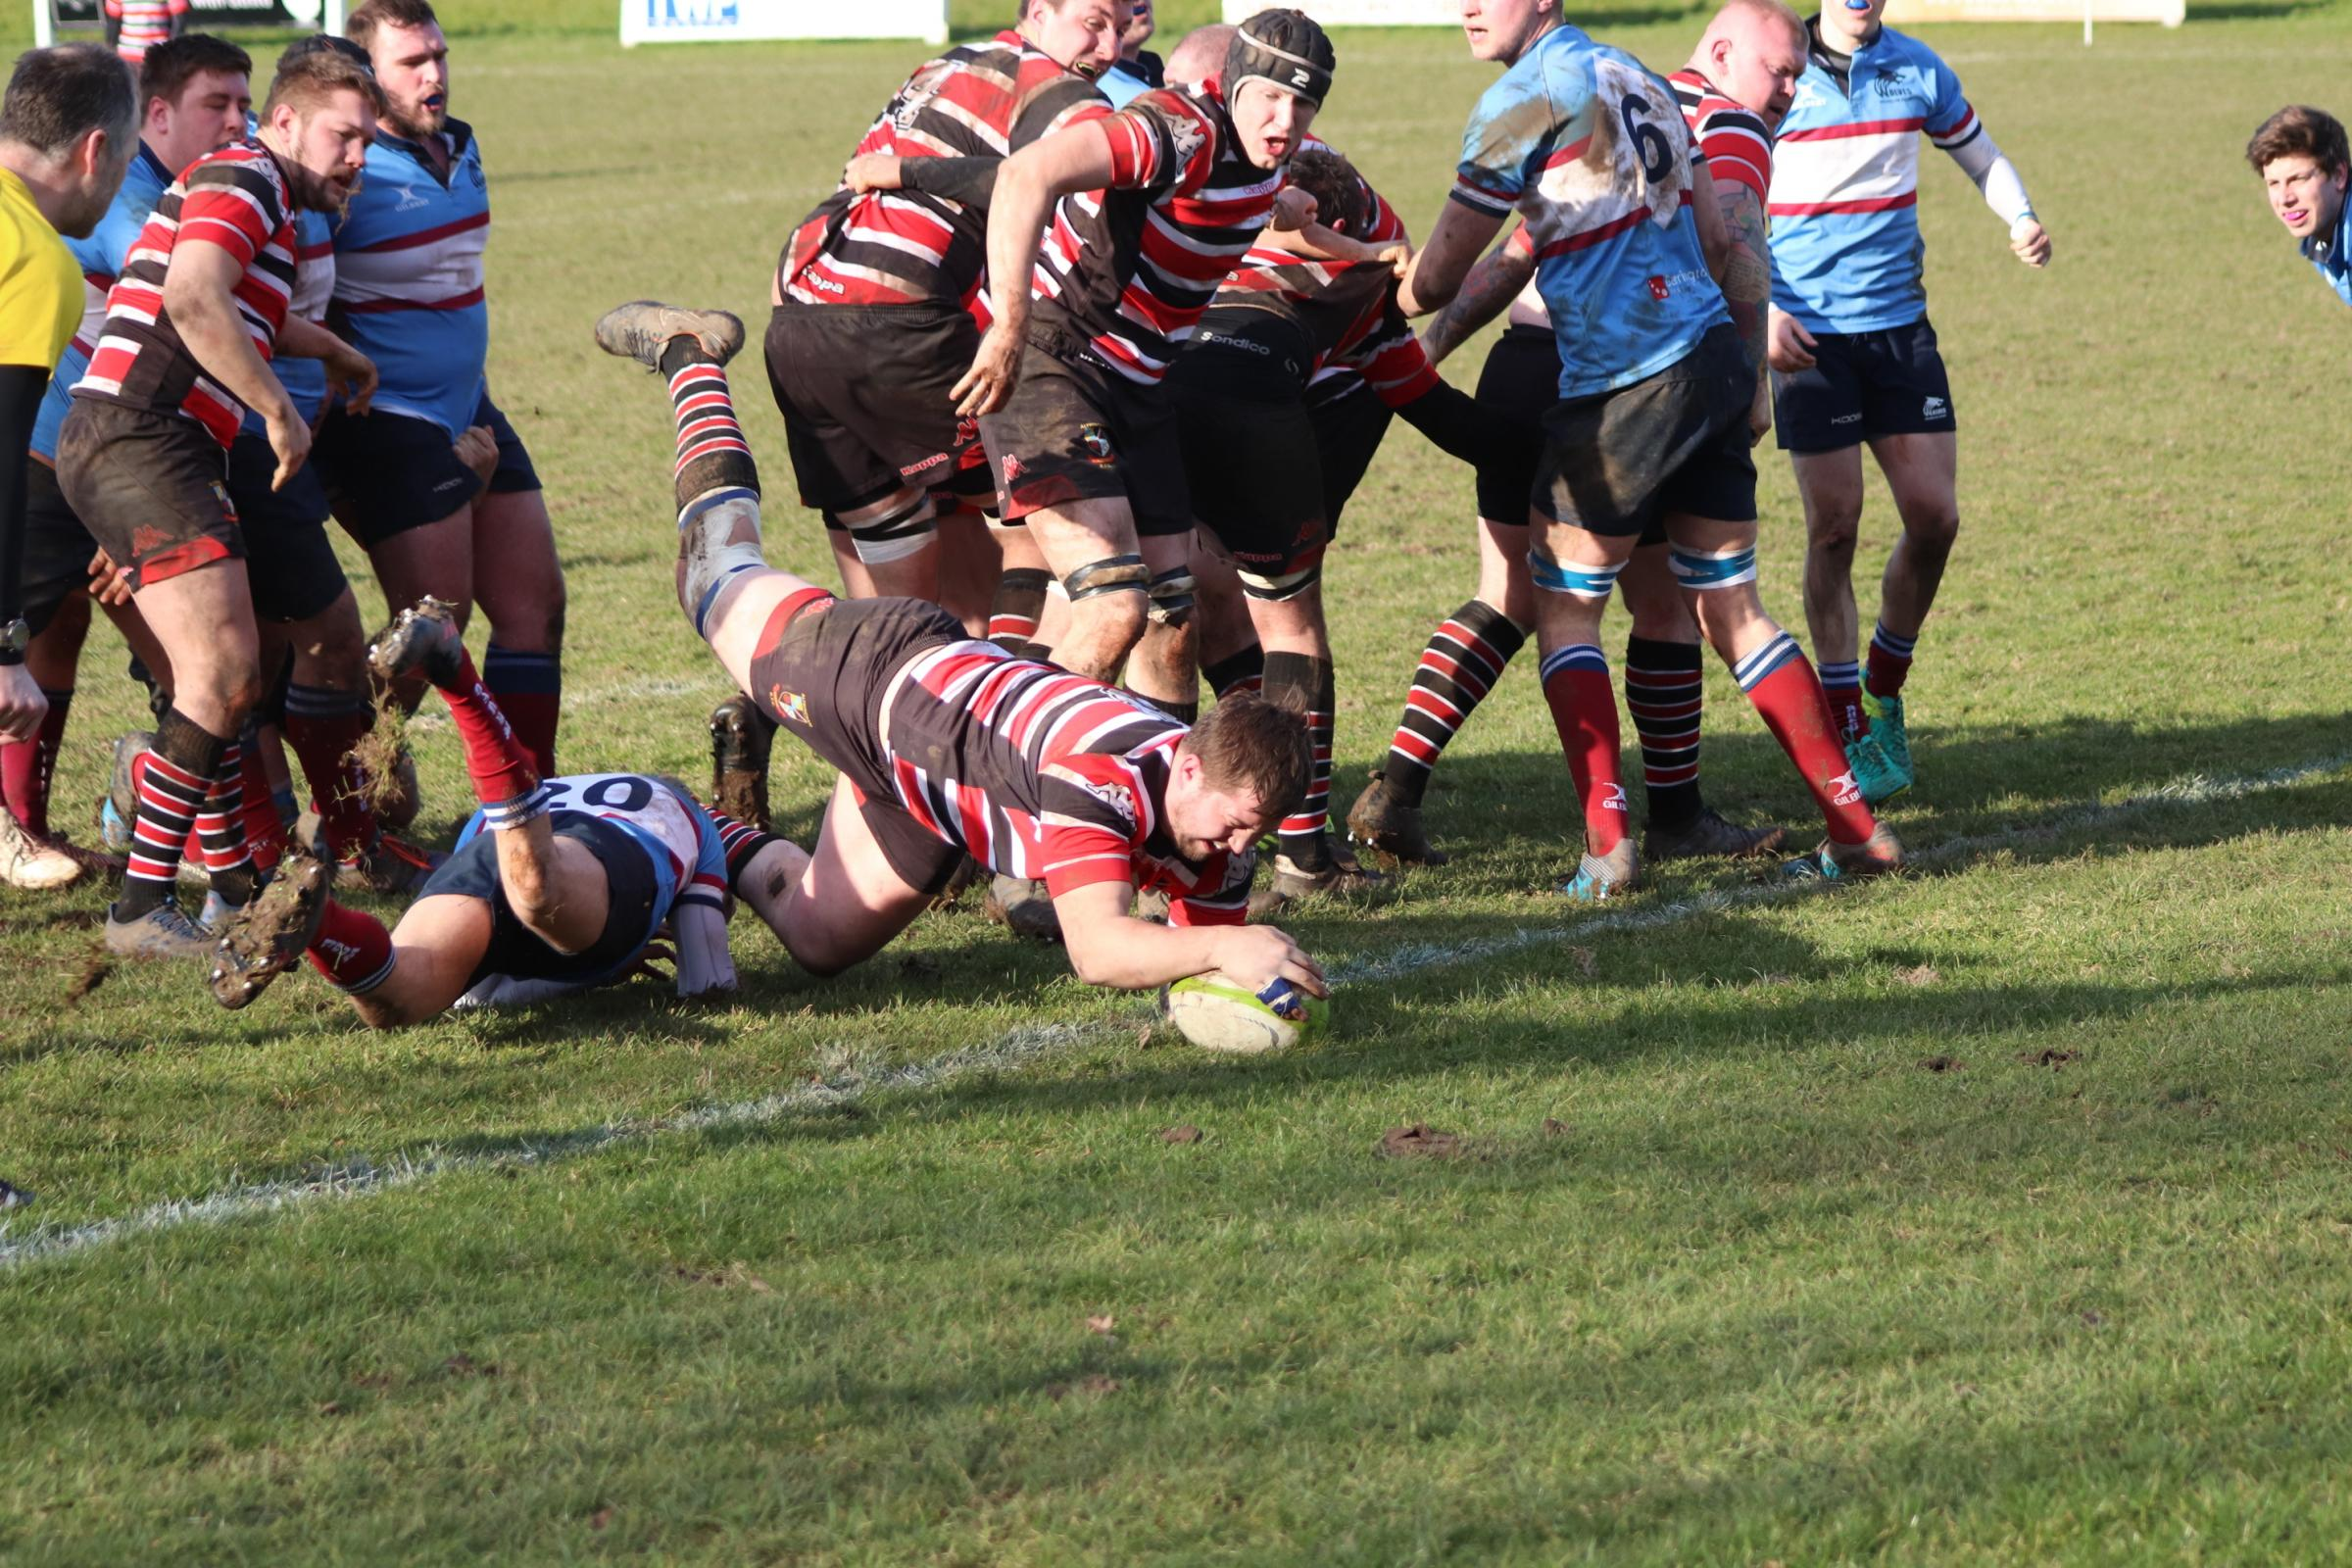 Andrew Frost scores a try for Kersal. Picture by Tracy Bailey